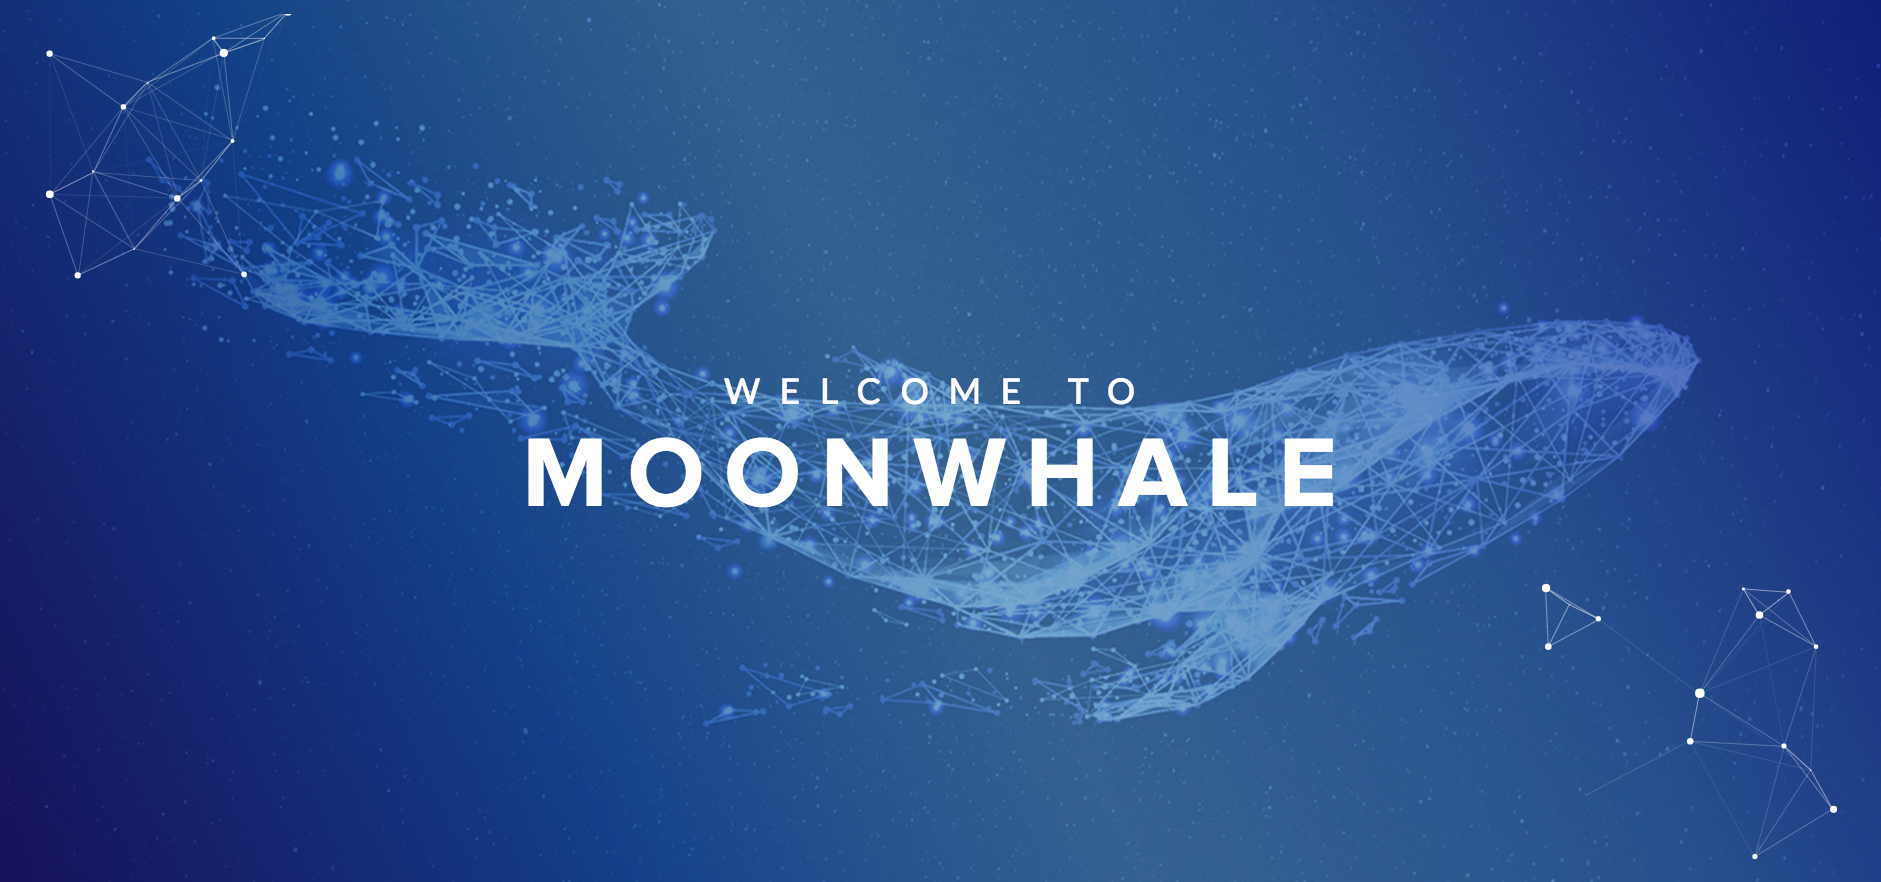 /moonwhale-blockchain-ventures-driving-crypto-global-adoption-29ac9f6271ff feature image